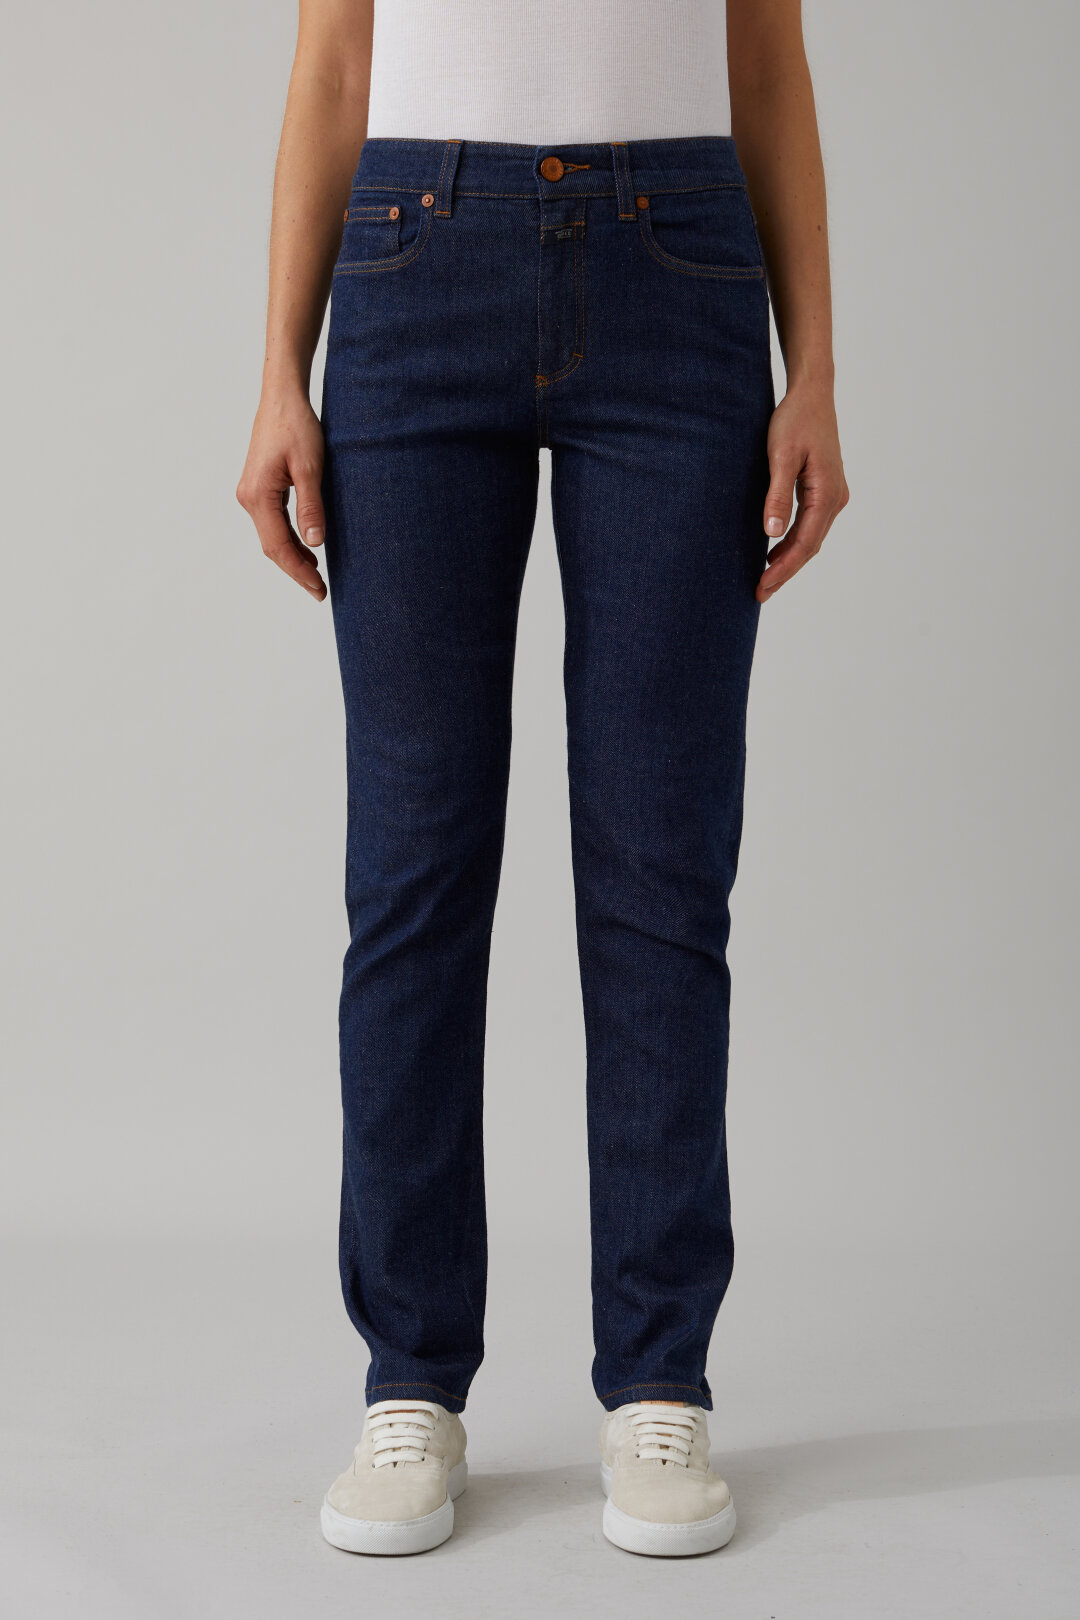 Britney Blue Super Stretch Selvedge Denim